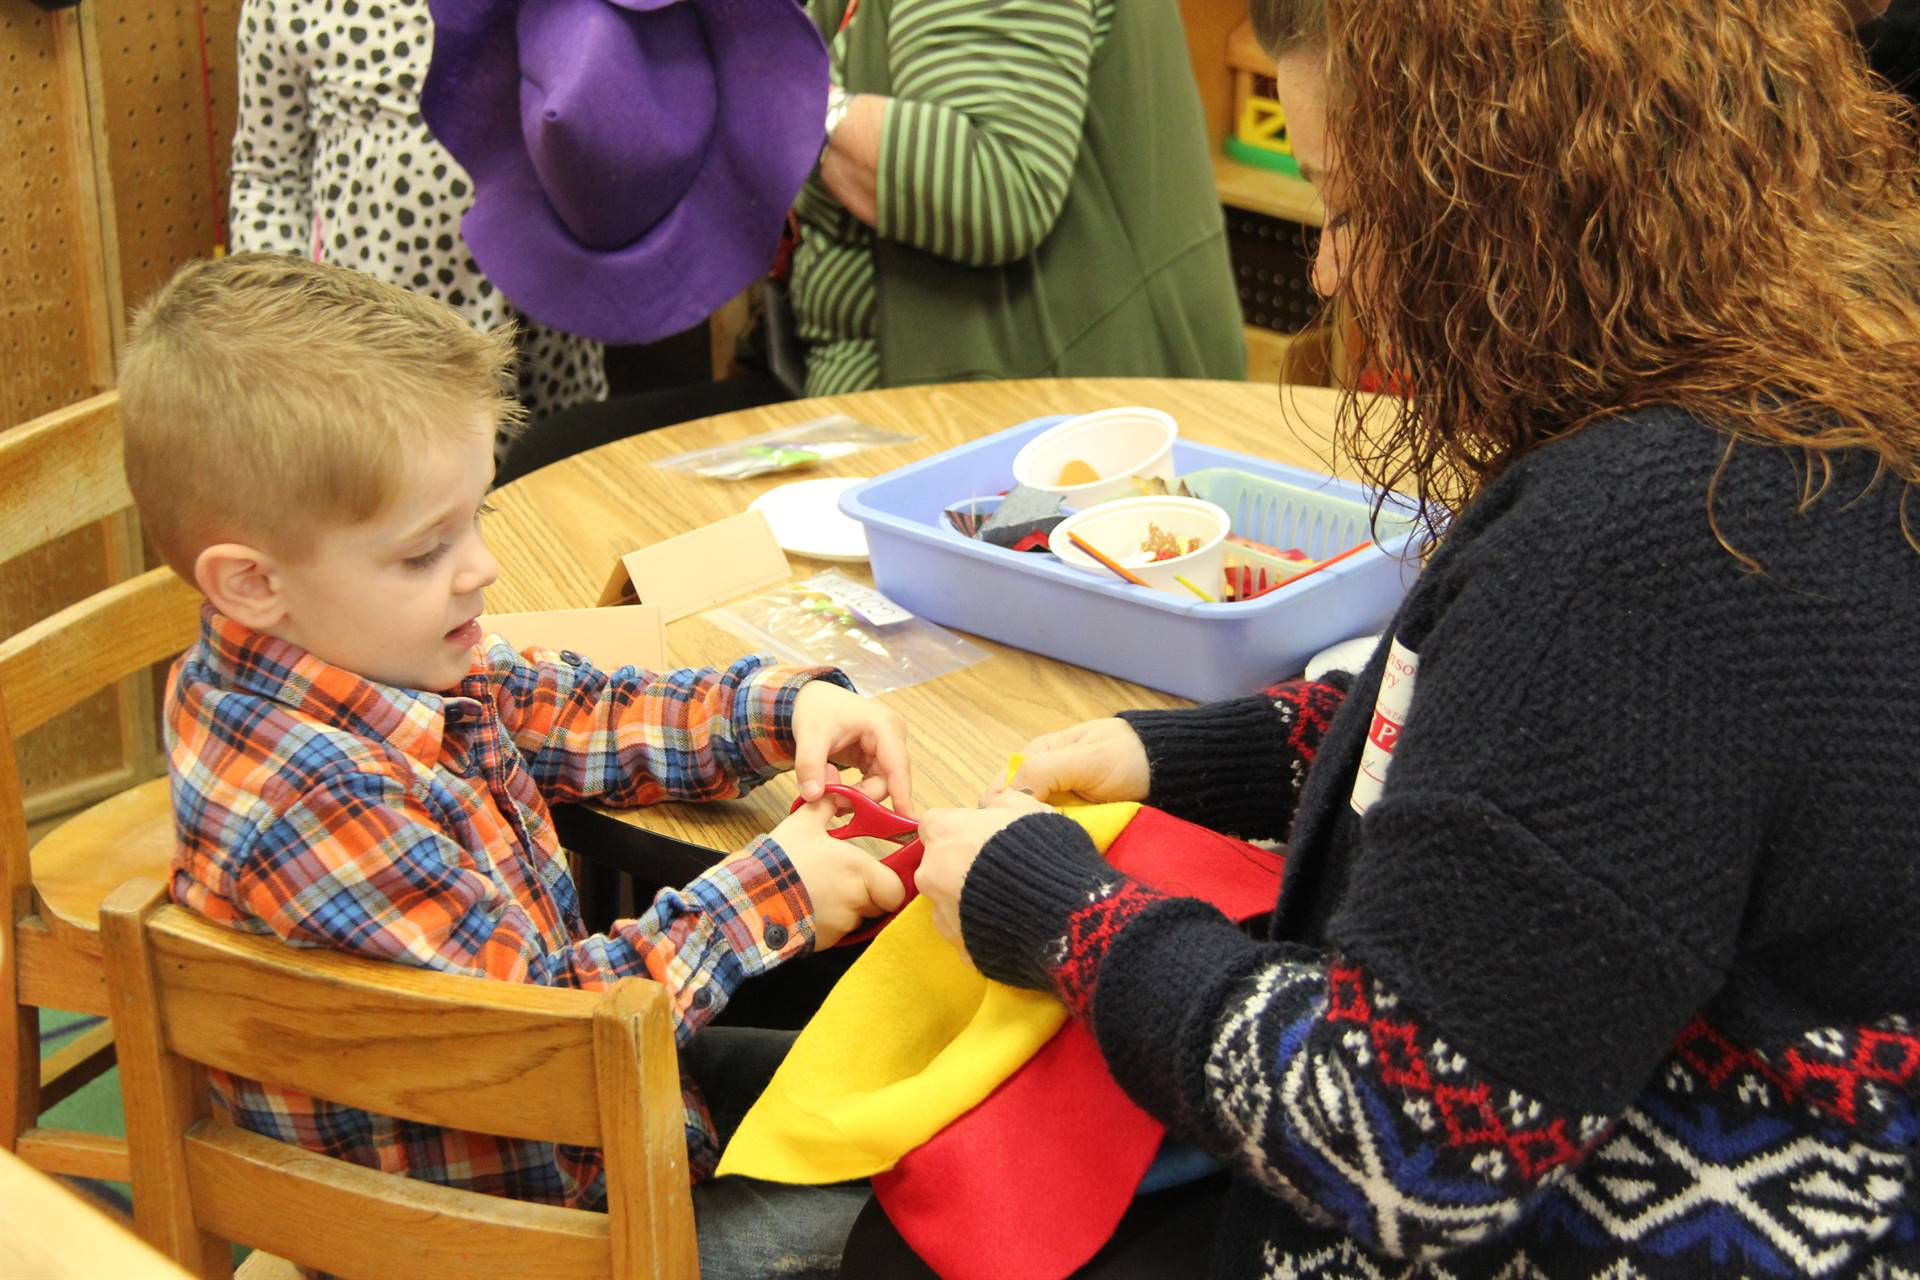 woman holds scarecrow hat while boy cuts with scissors